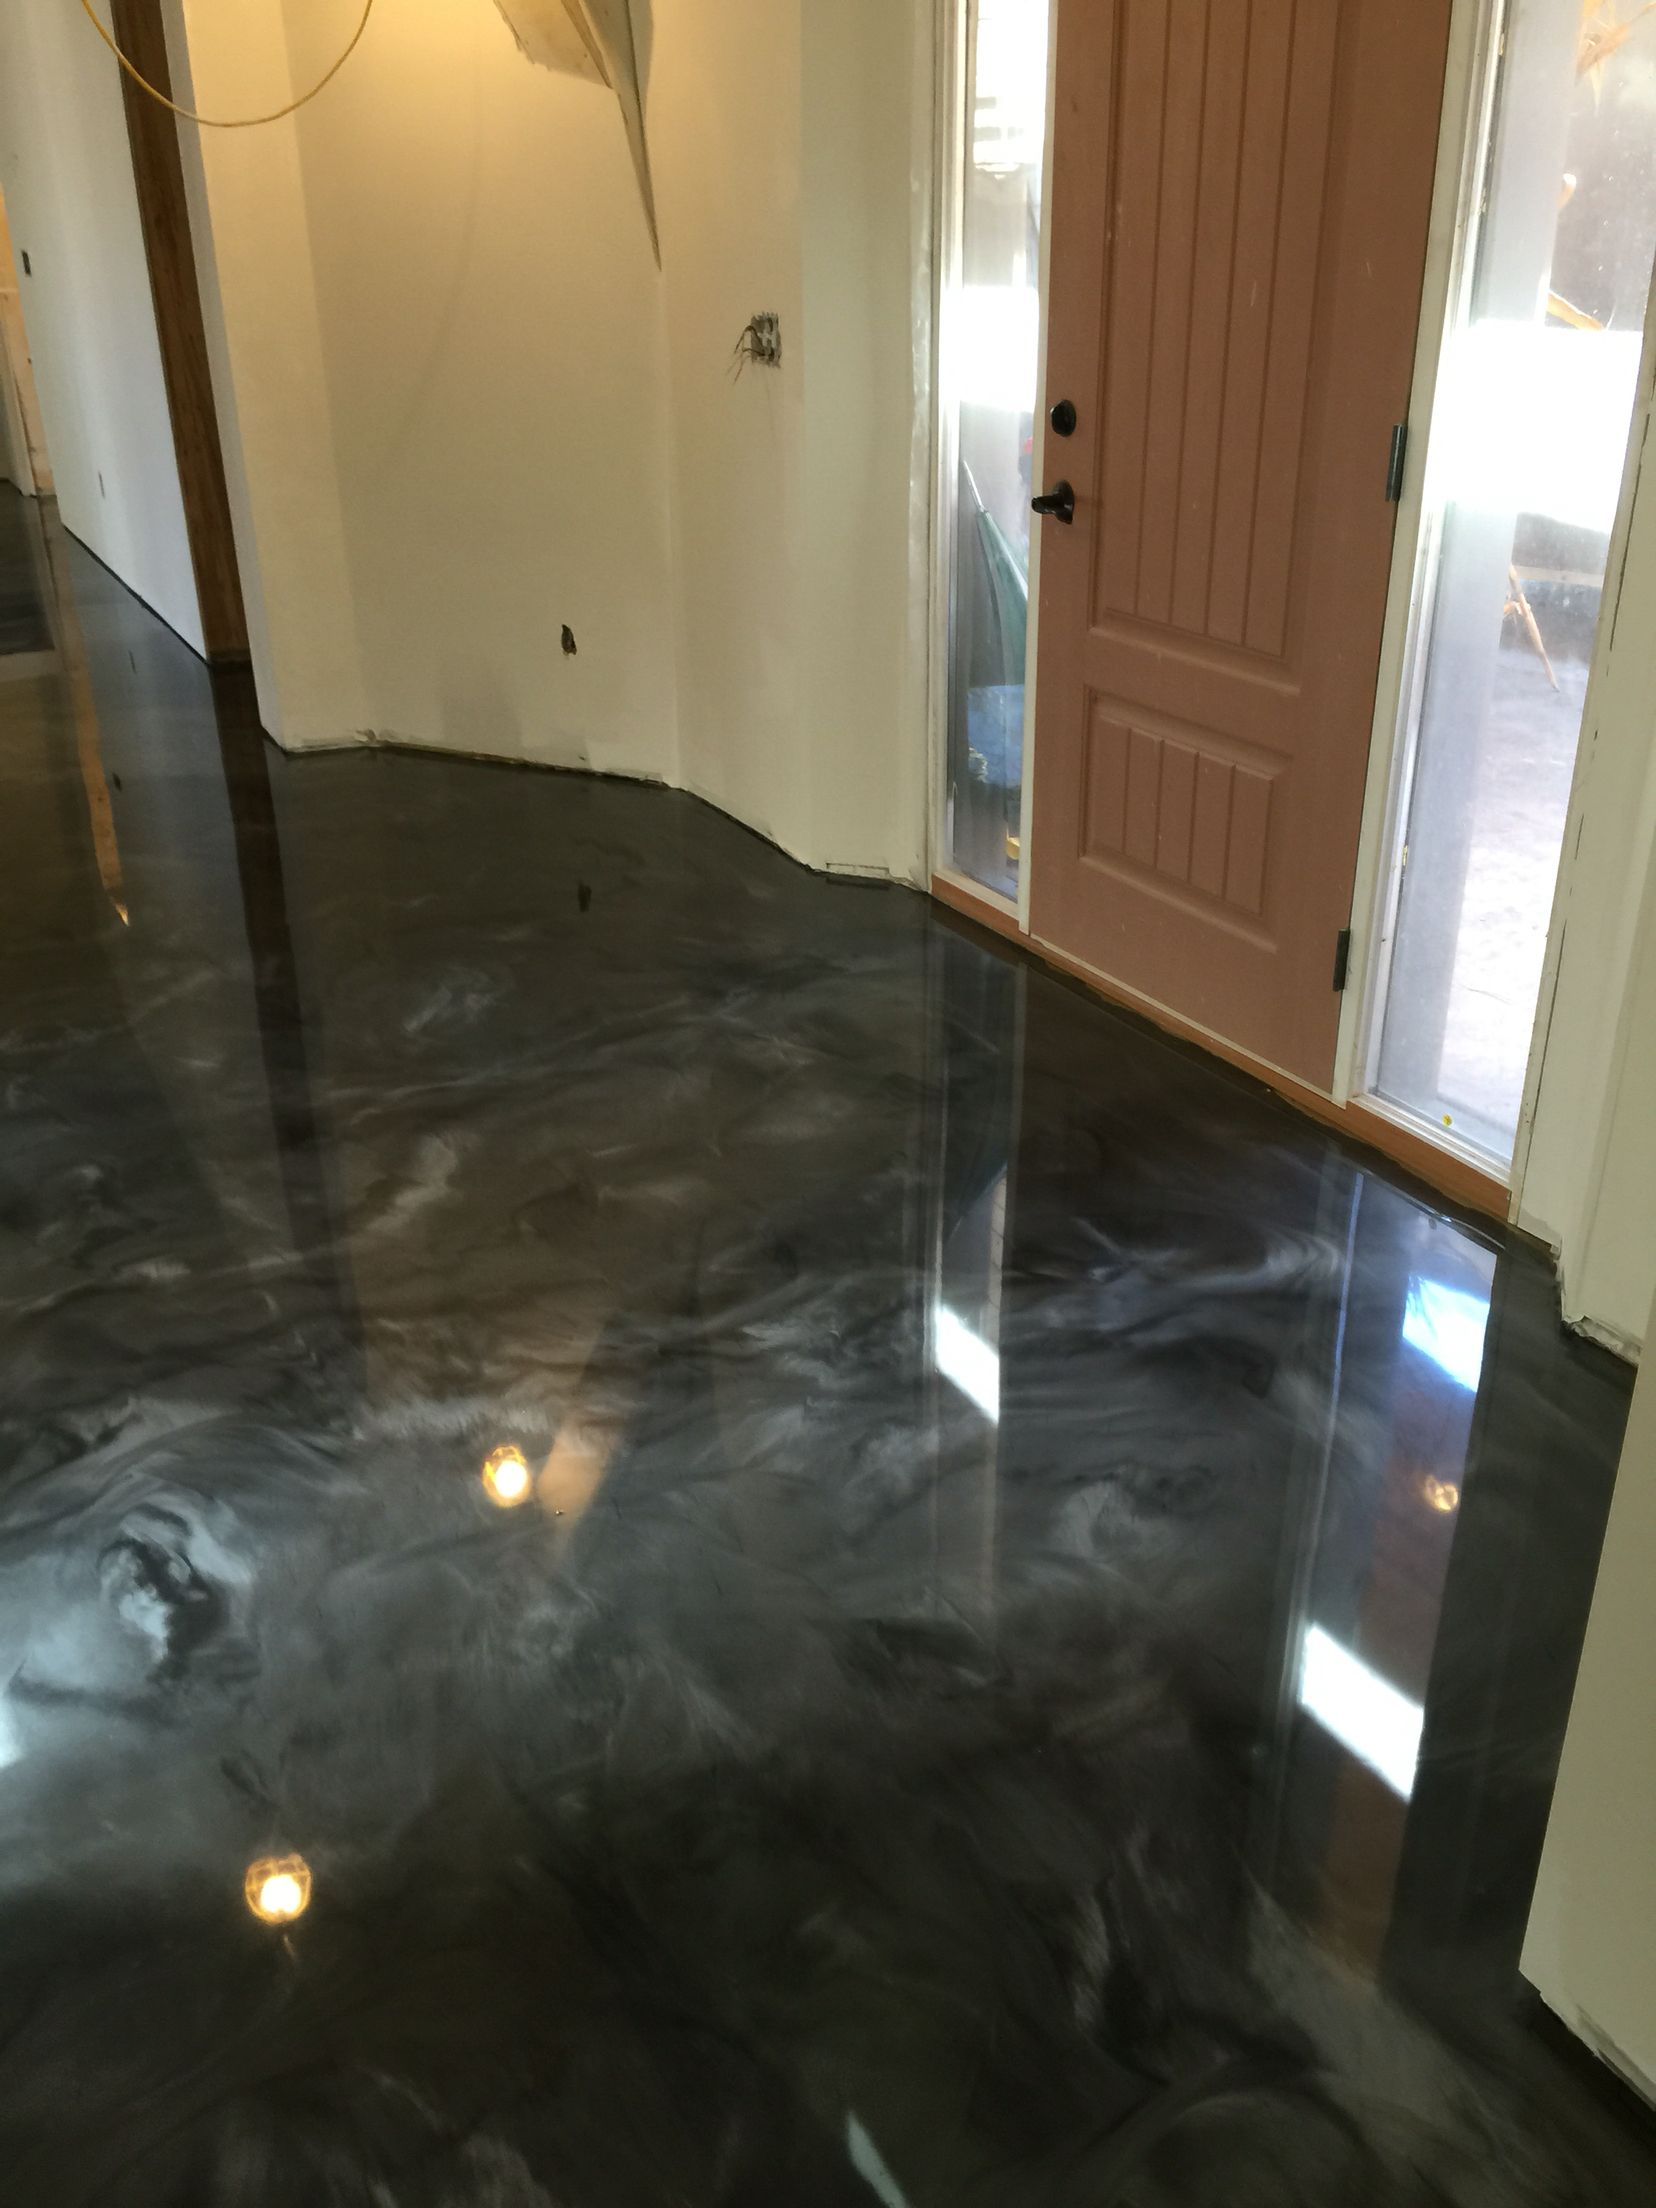 Metallic epoxy floor coating by sierra concrete arts - Interior concrete floor resurfacing ...